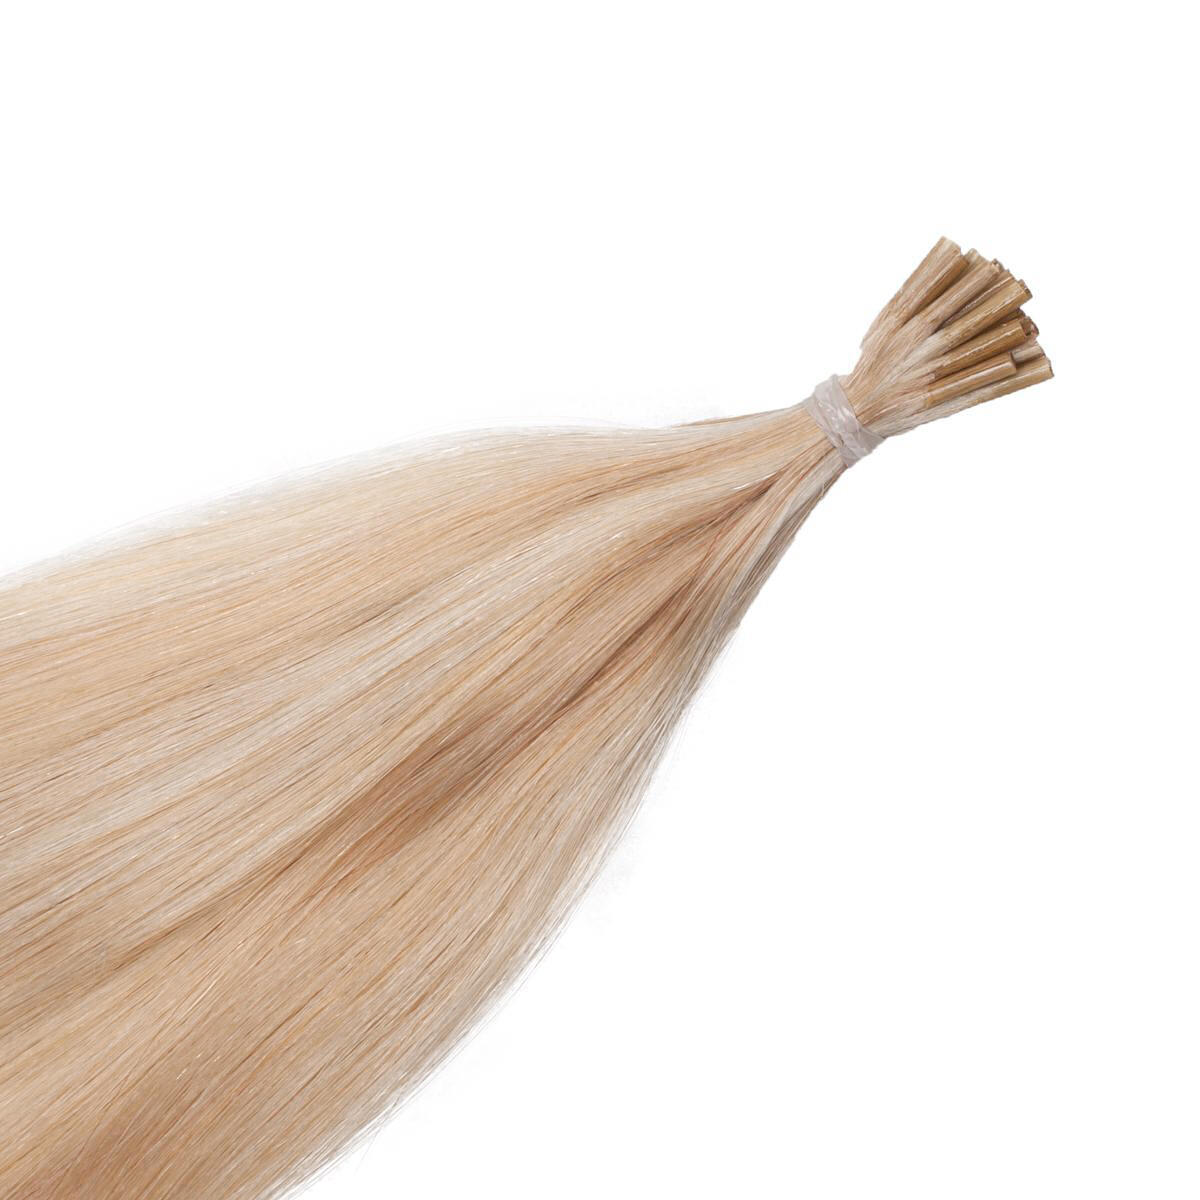 Stick Hair Original Glatt M7.5/10.8 Scandinavian Blonde 50 cm